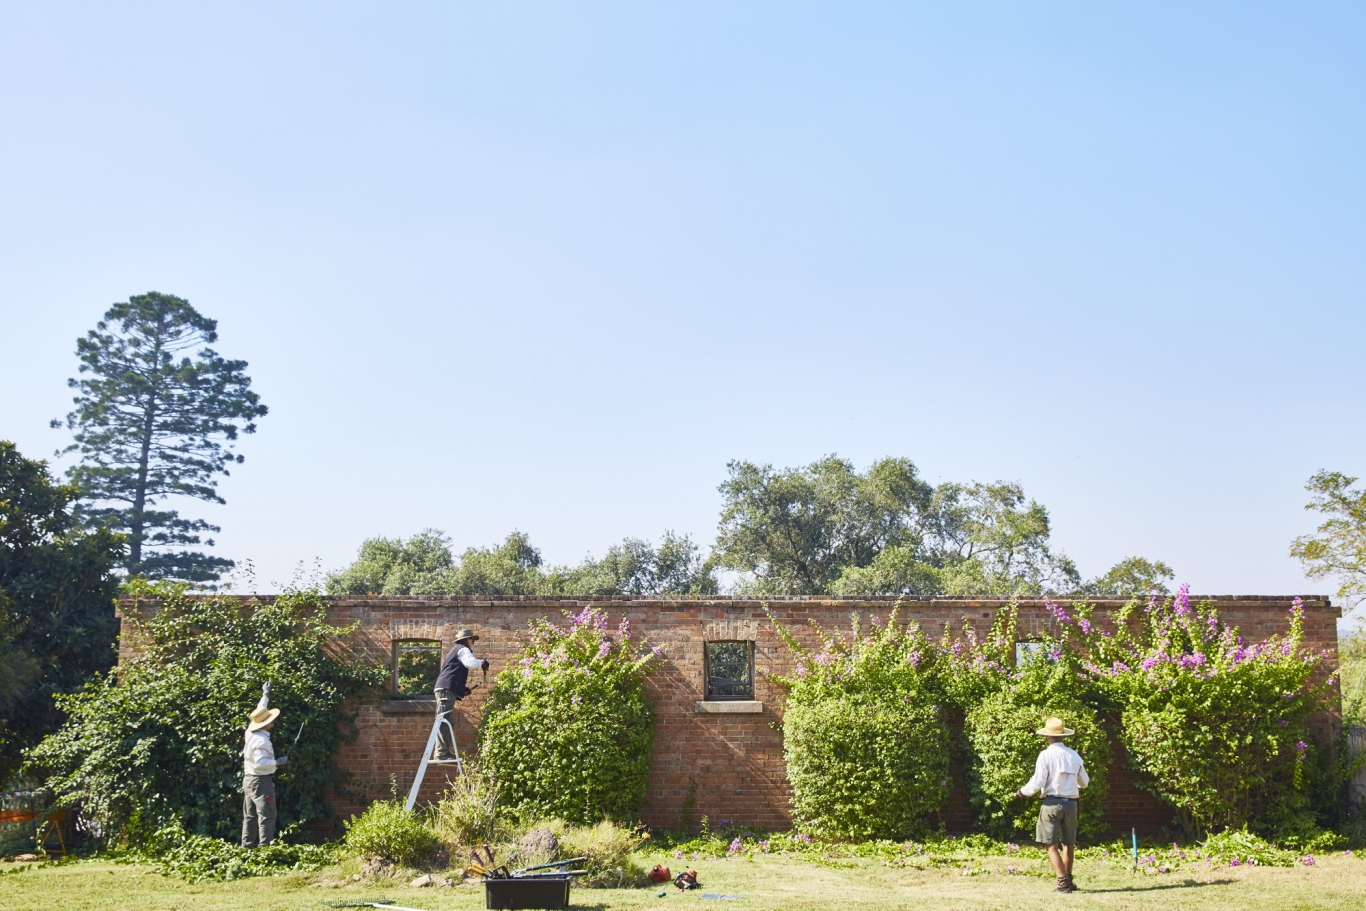 Photograph of the SLM gardens team pruning the bougainvillea